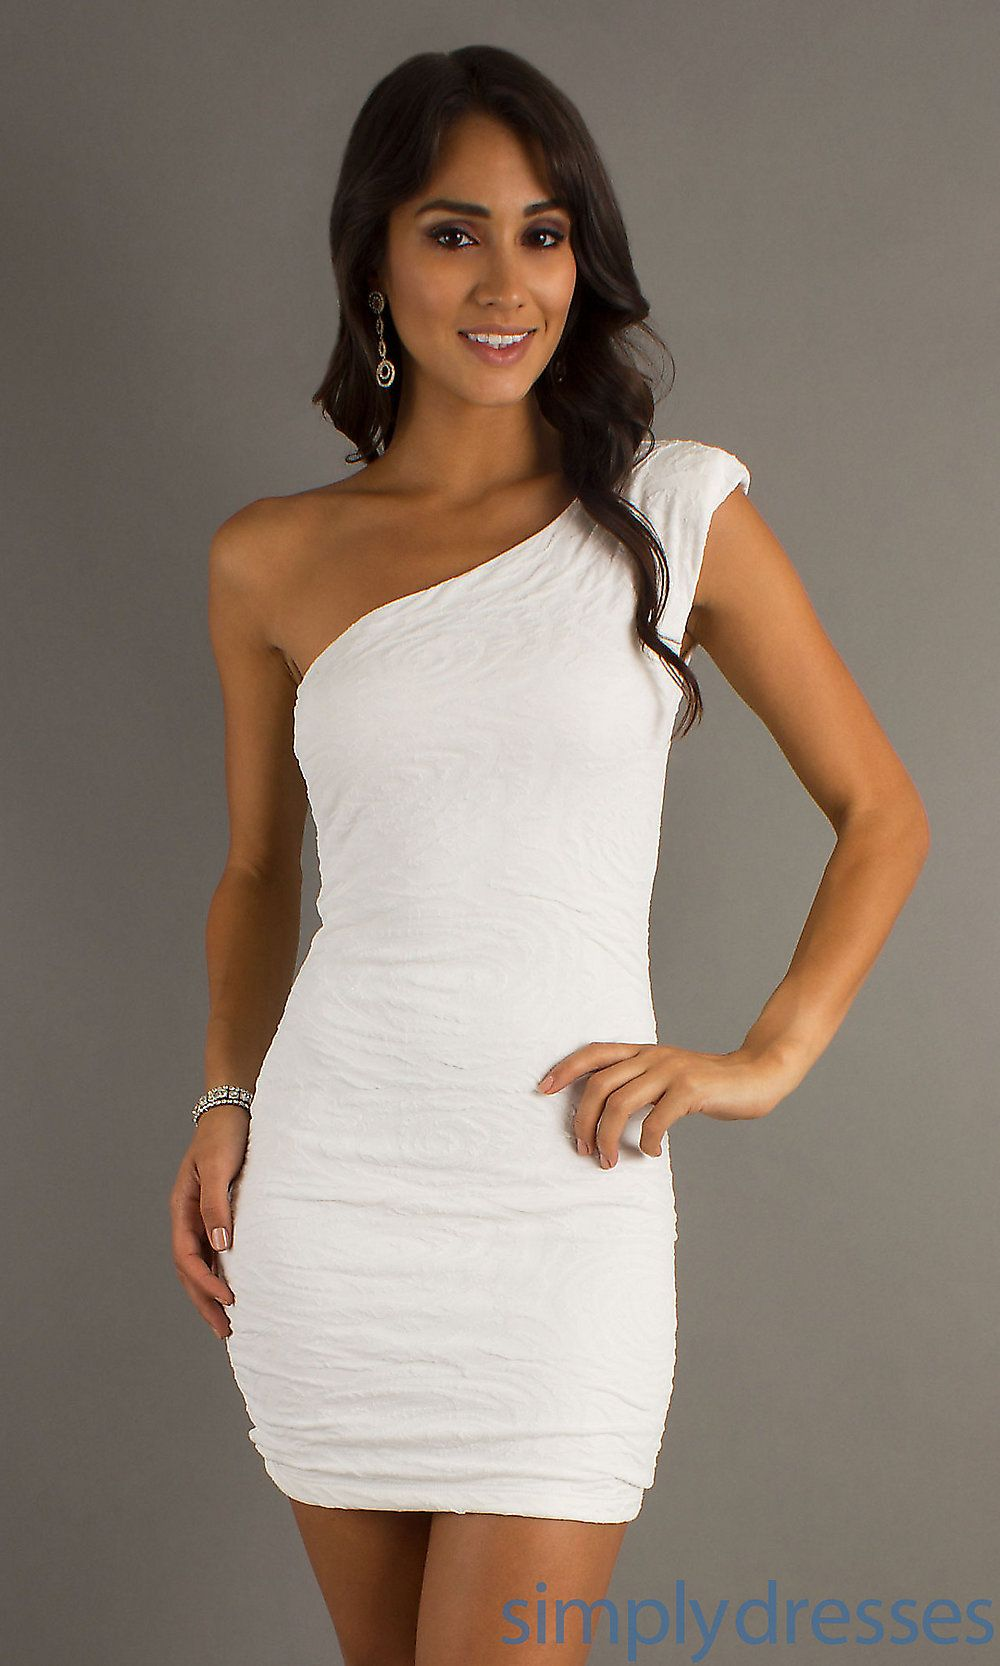 Bachelorette Dress | Stylista | Pinterest